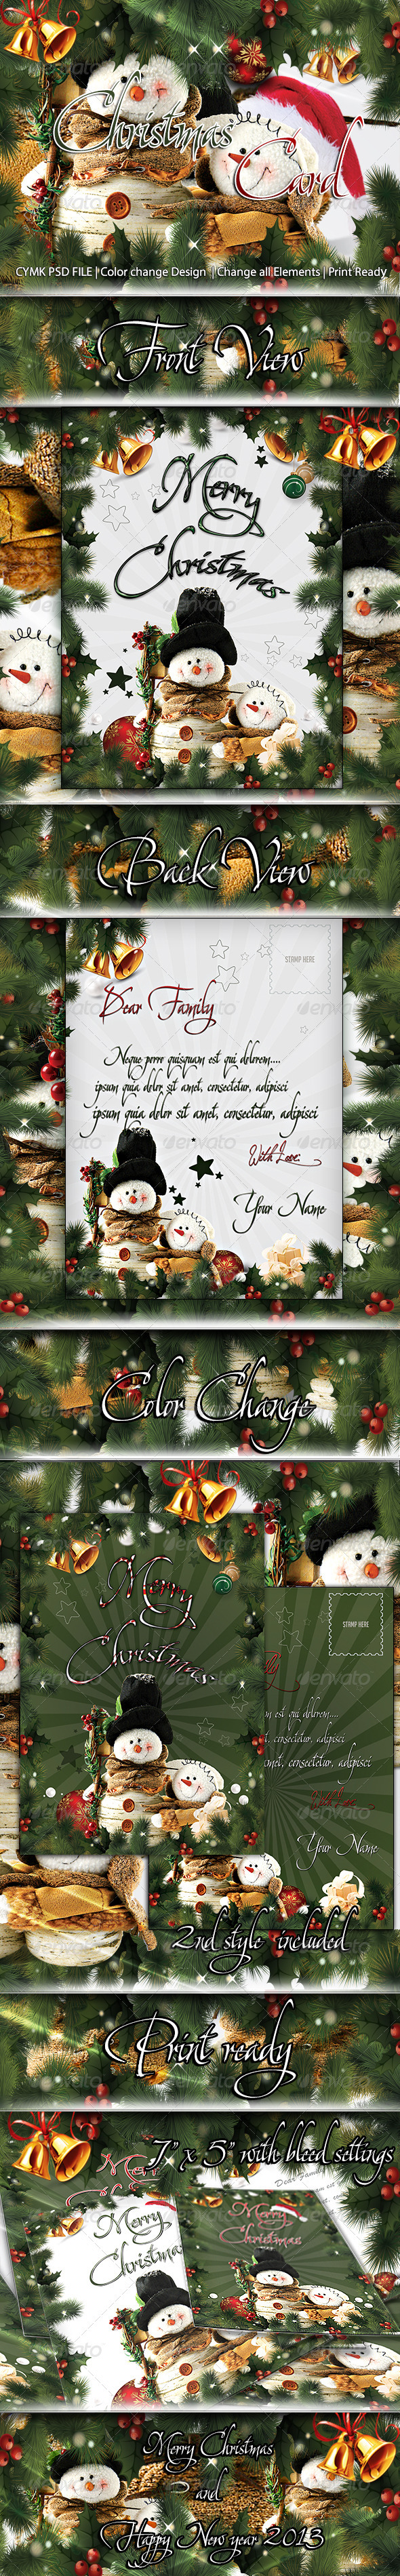 GraphicRiver Christmas Card 3582791